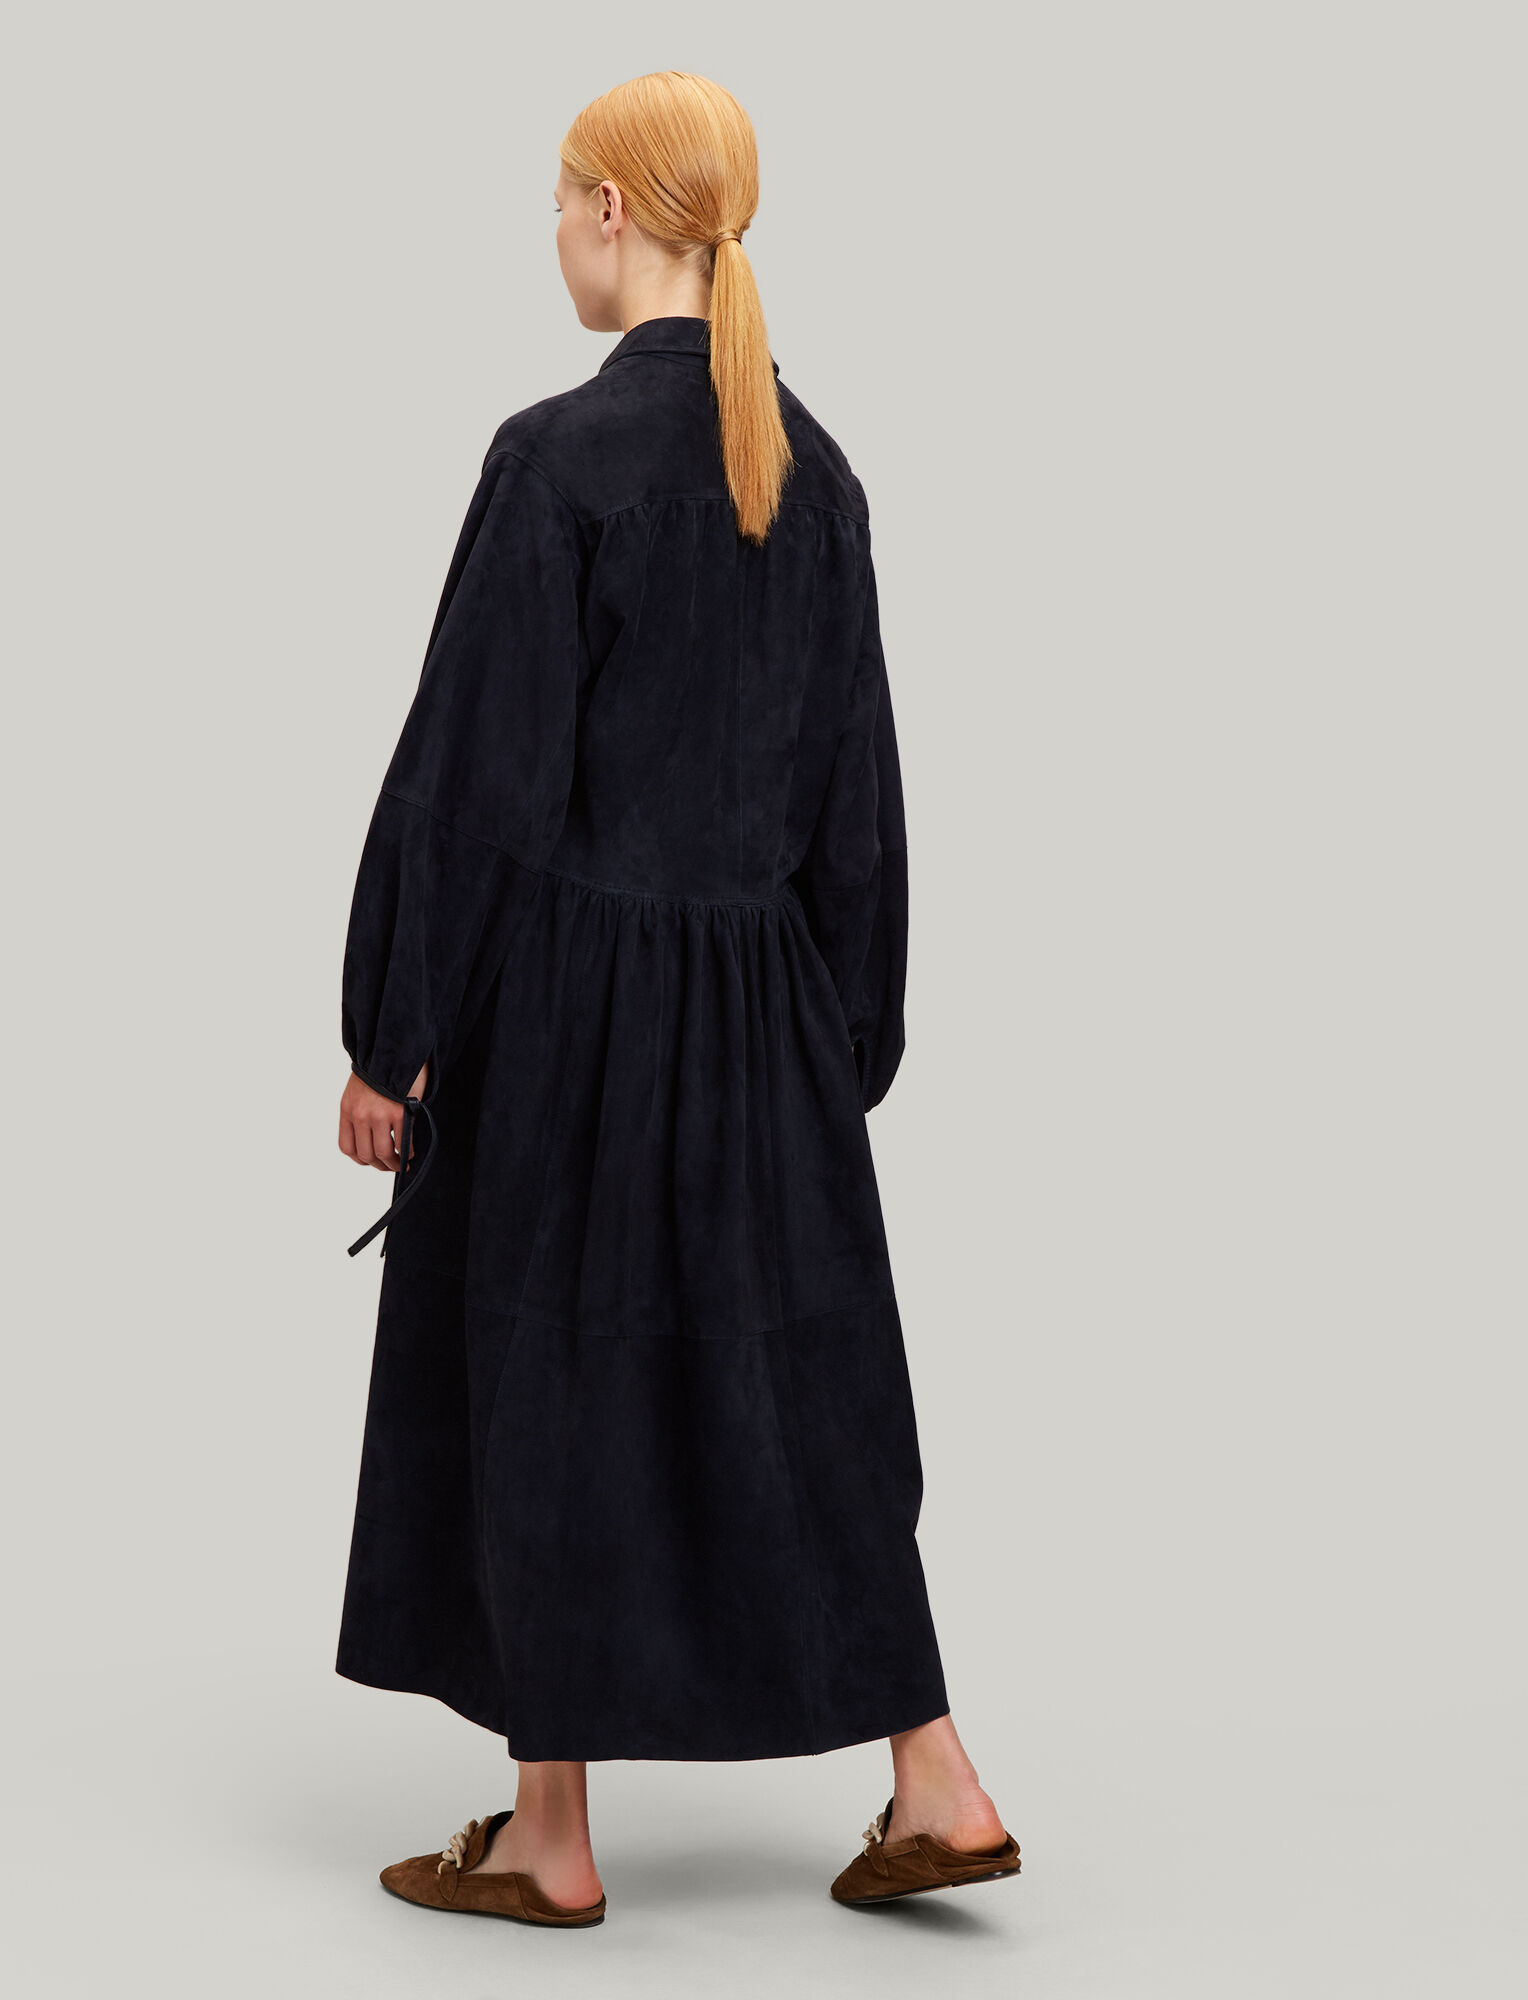 Joseph, Claudia Suede Leather Dress, in NAVY